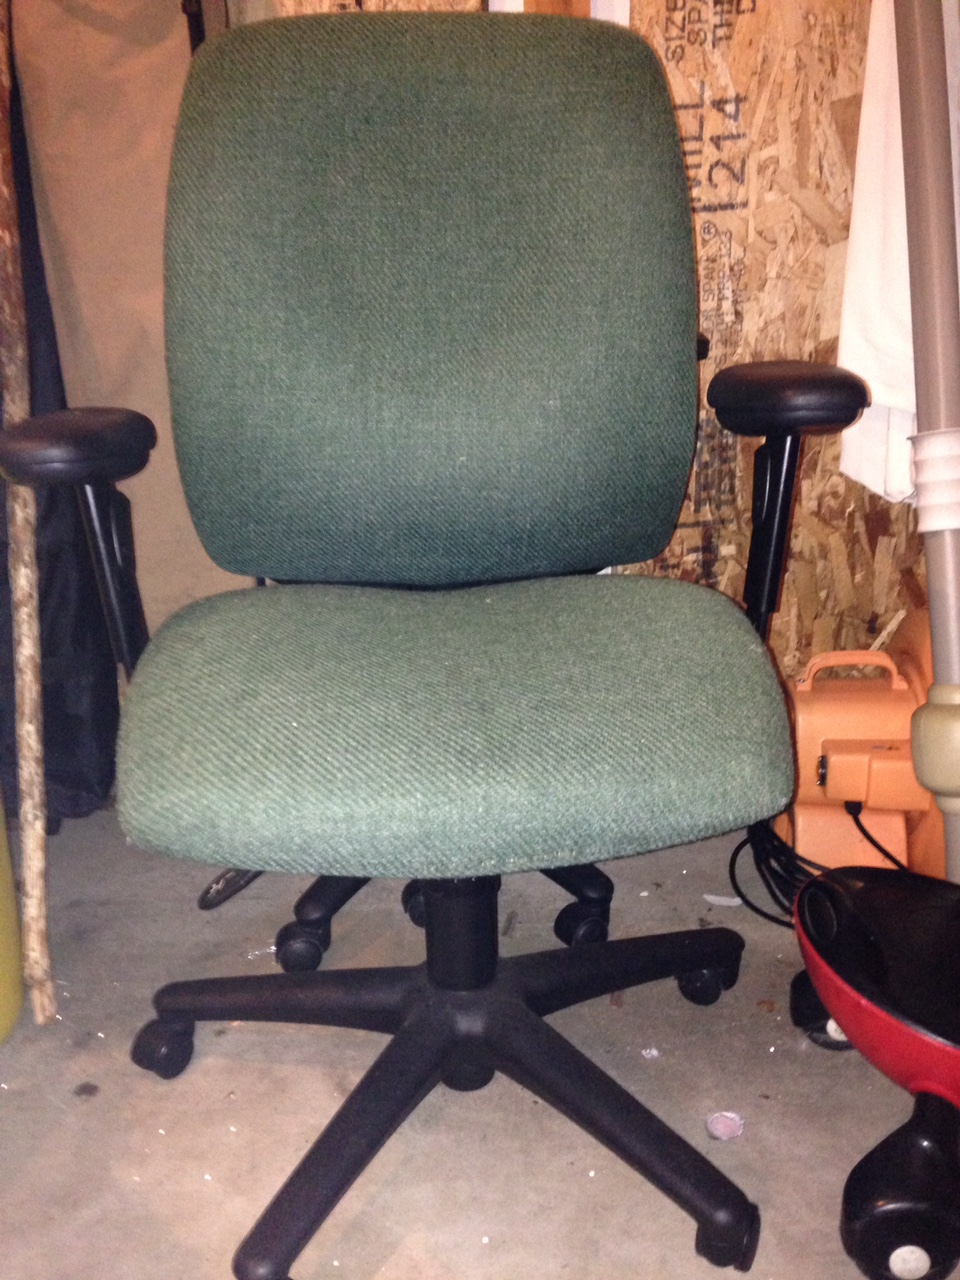 Office chair slipcovers - I Can Make Office Chair Slipcovers For Out Of State Customers I Will Ask For A Couple Measurements To Get A Custom Fit The Seat Has Two Velcro Straps To